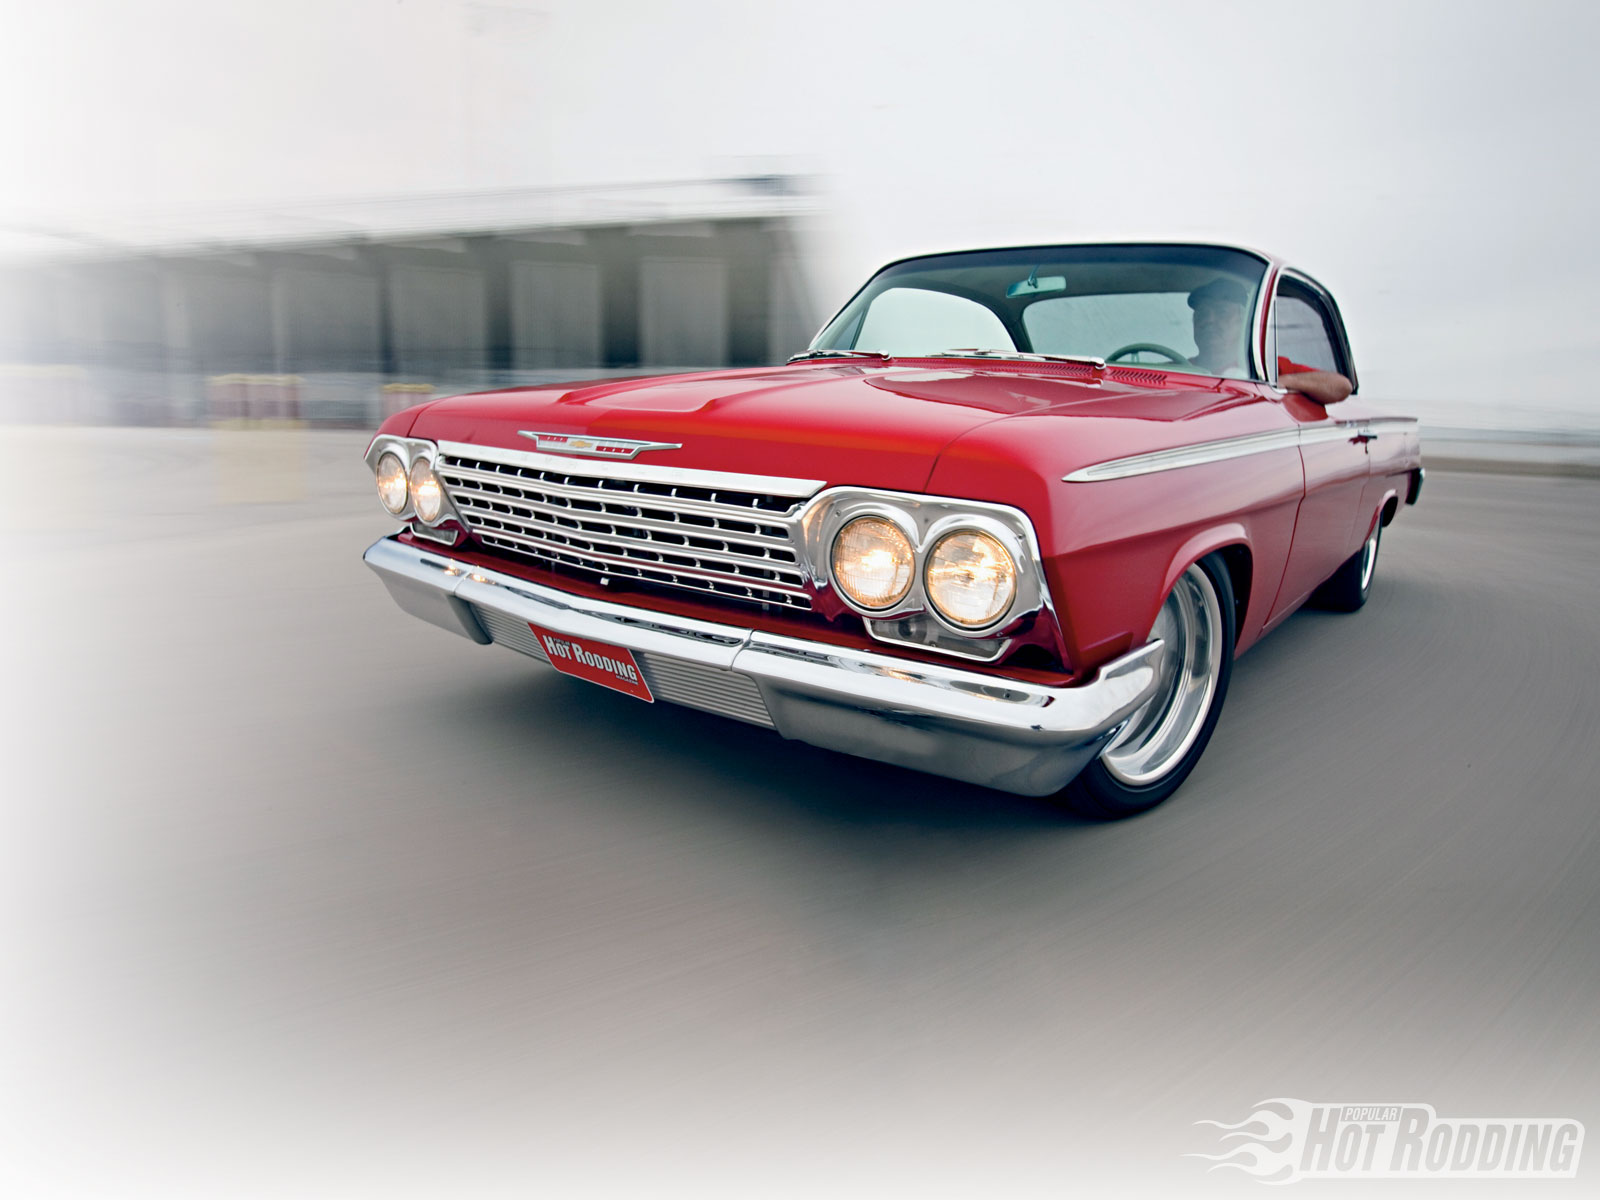 hight resolution of 1010phr 05 o 1962 chevy imapala front left